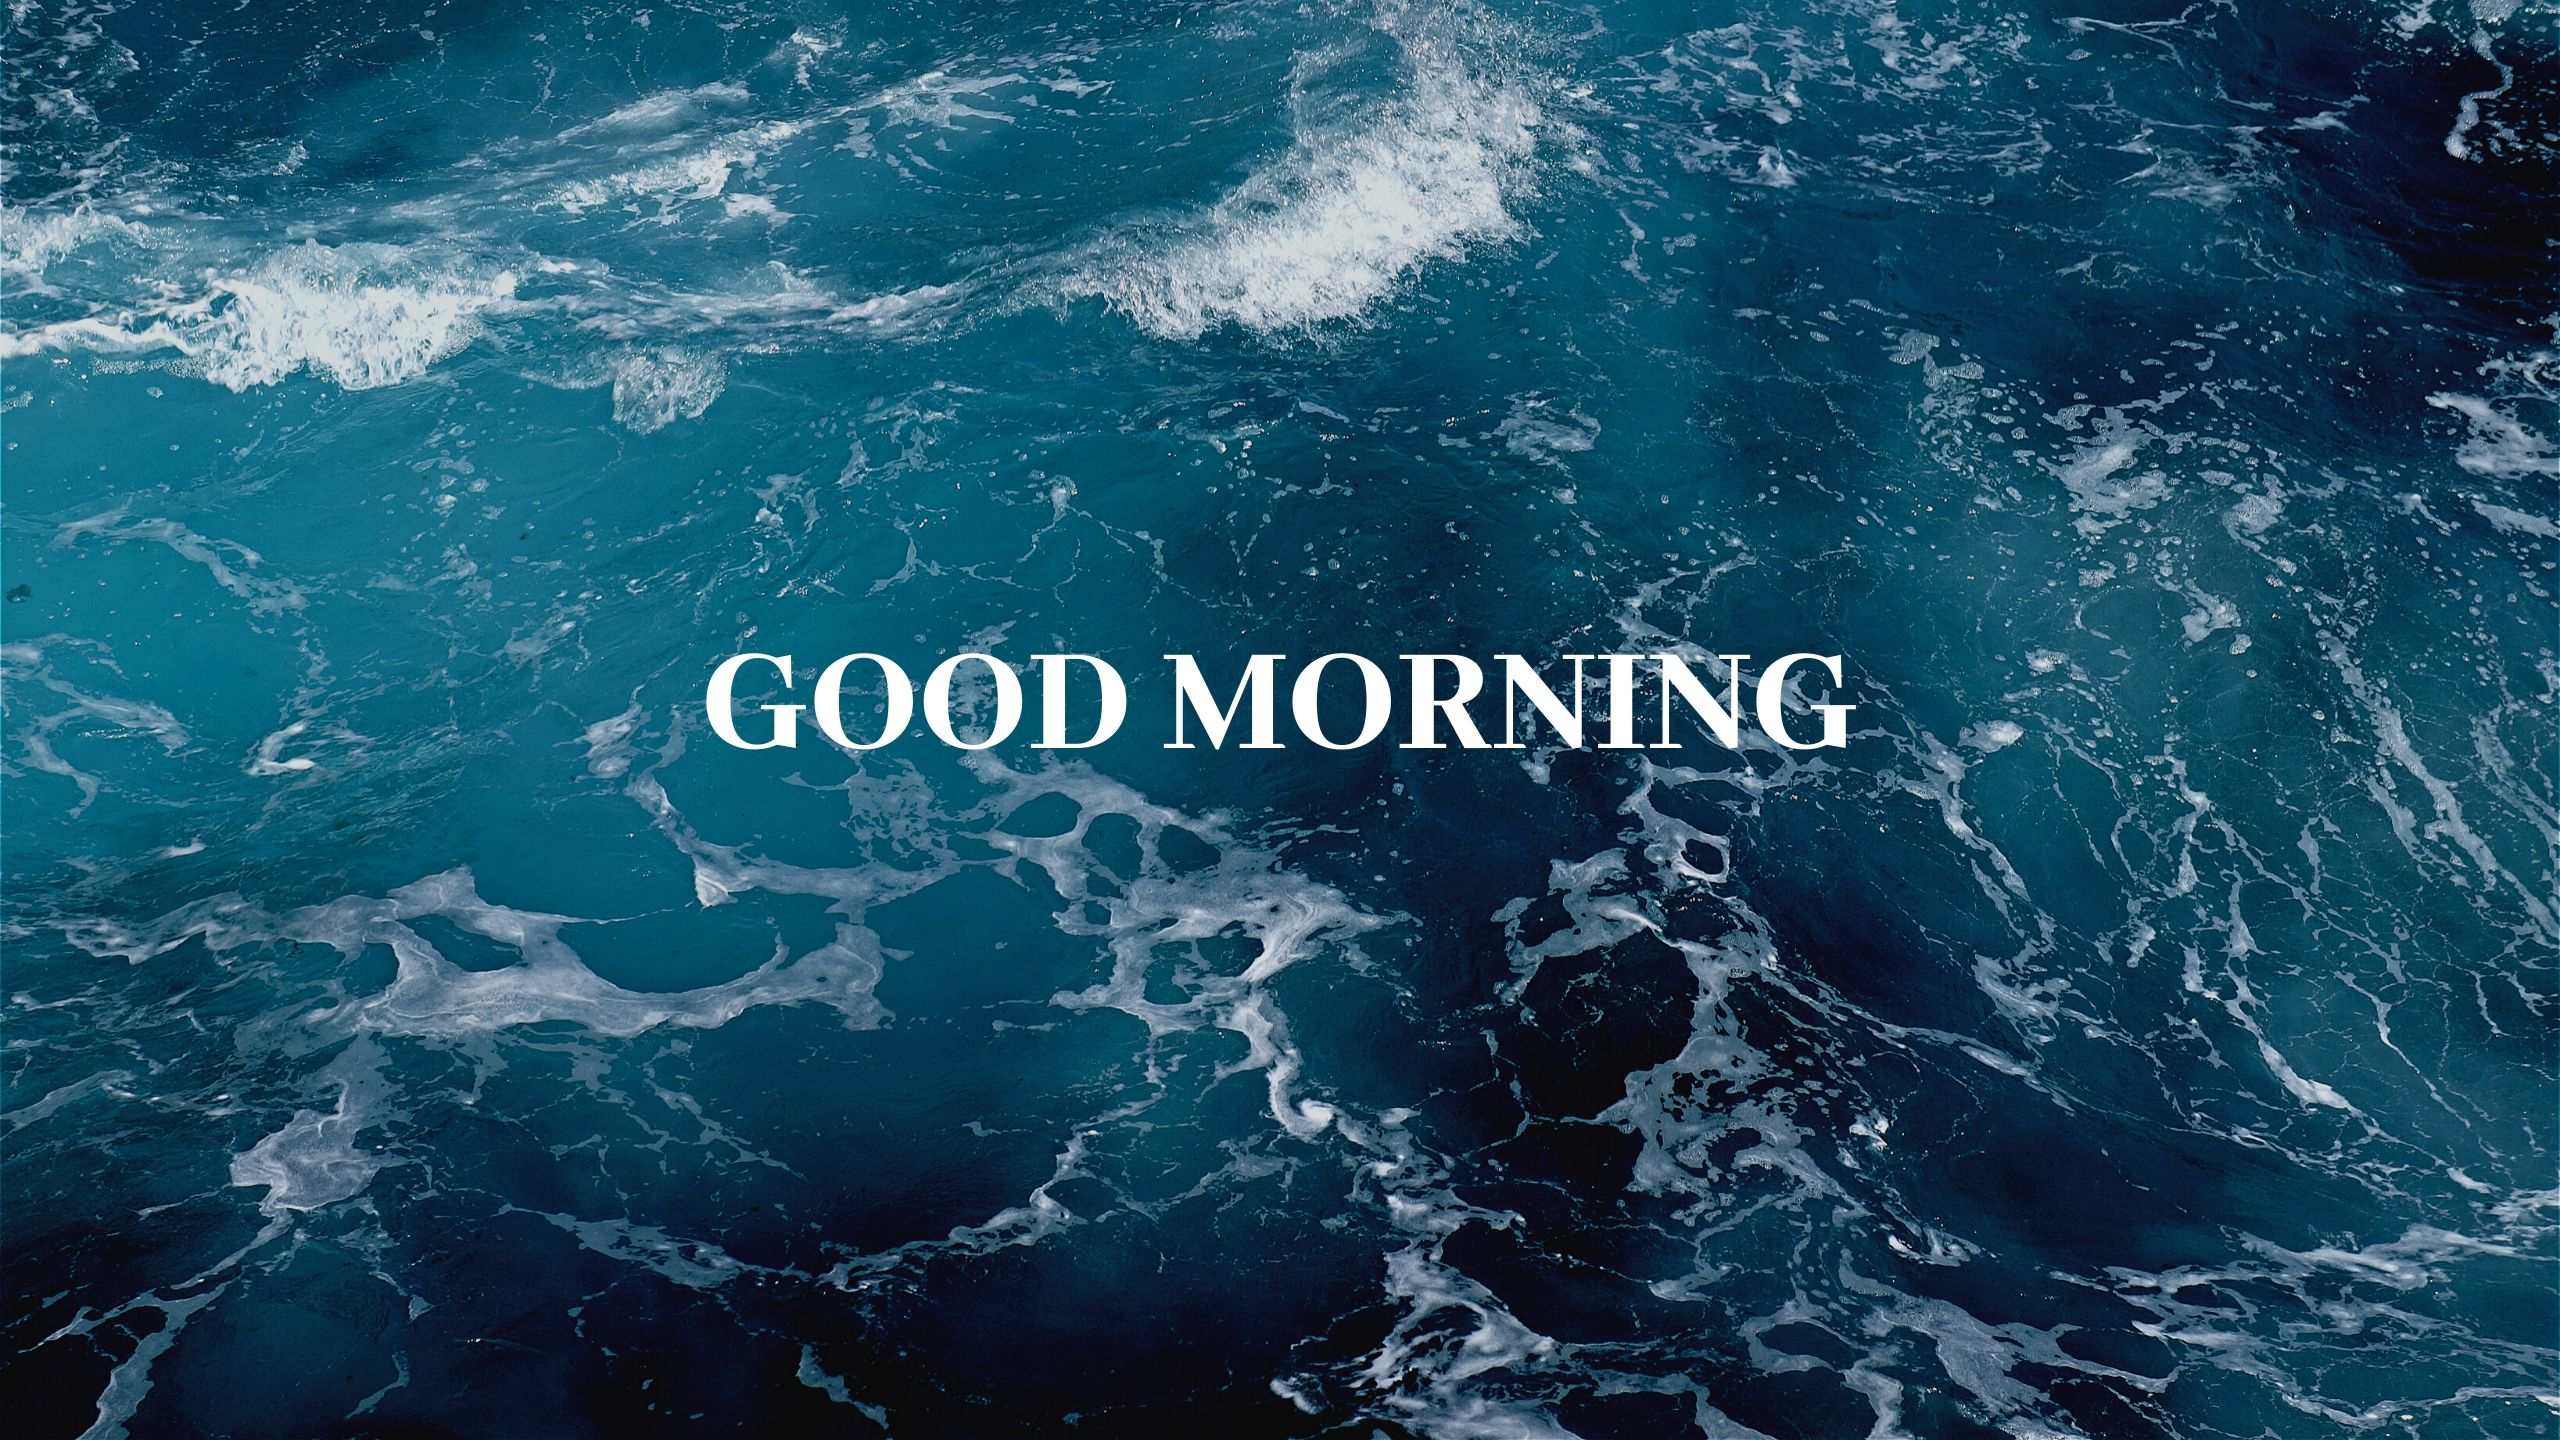 Good Morning Picture sea full HD free download.